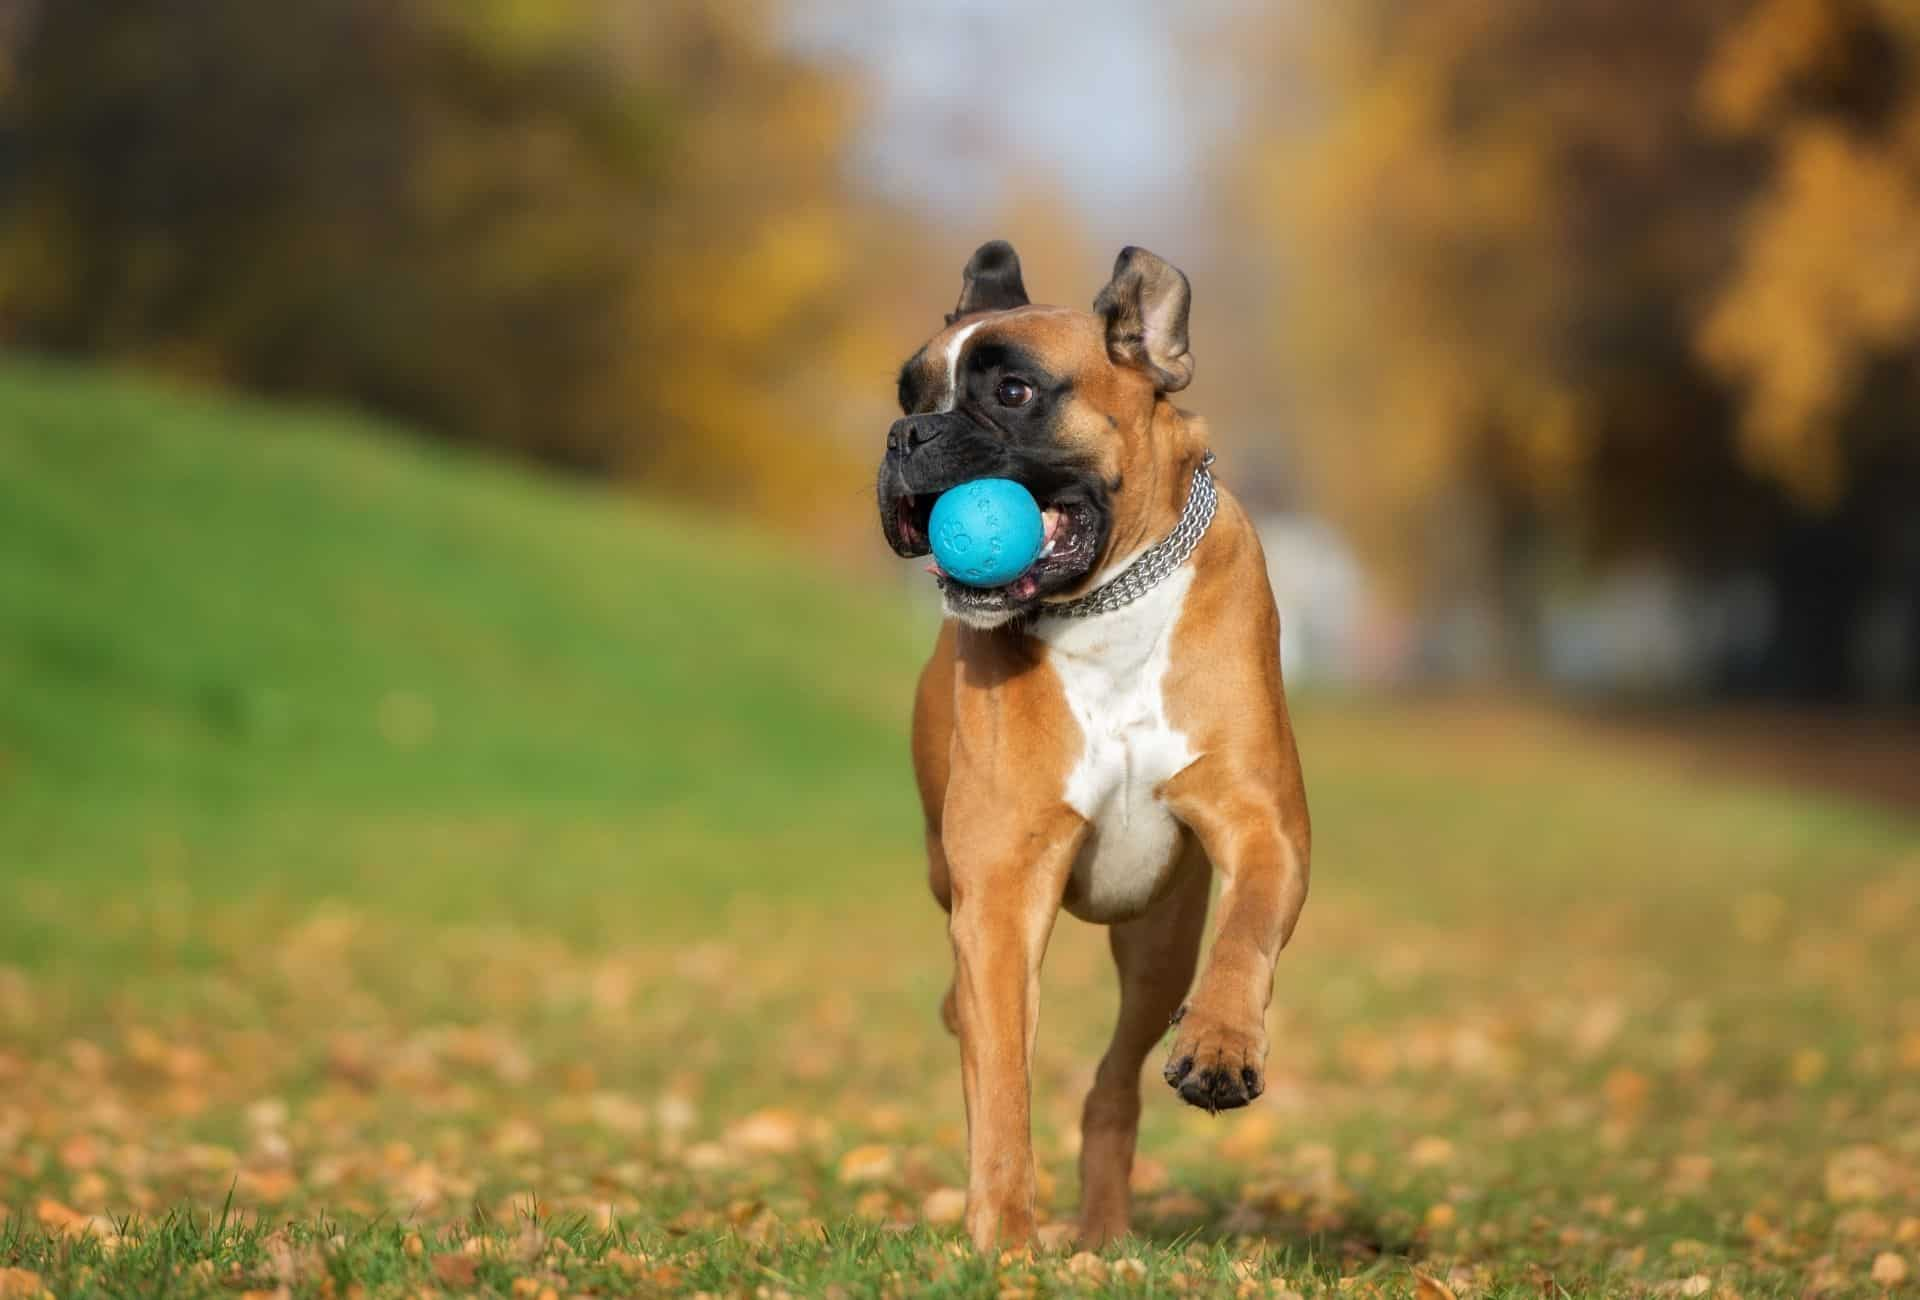 Boxer retrieving a blue ball, showing that despite being alert and good guard dogs, Boxers are fun dogs for first time owners.